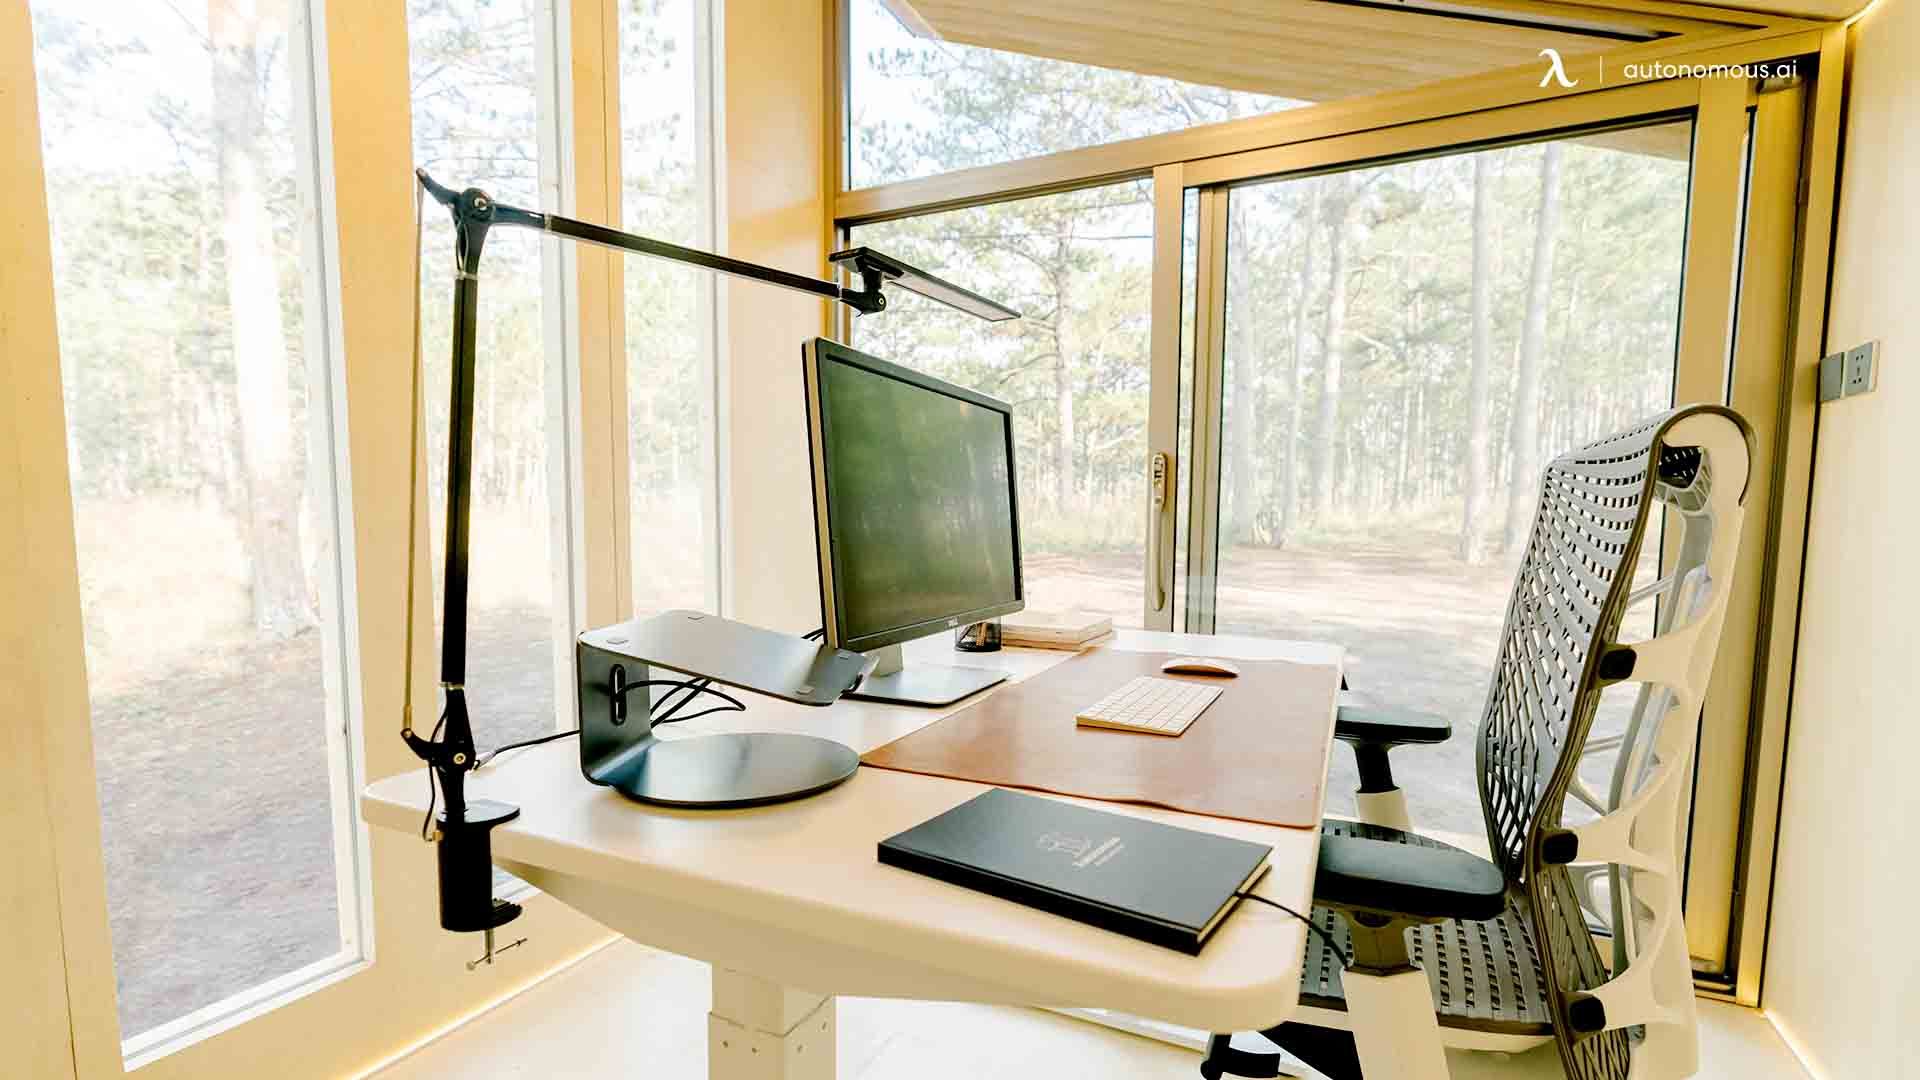 Accessories You Can Add to Your Standing Desk